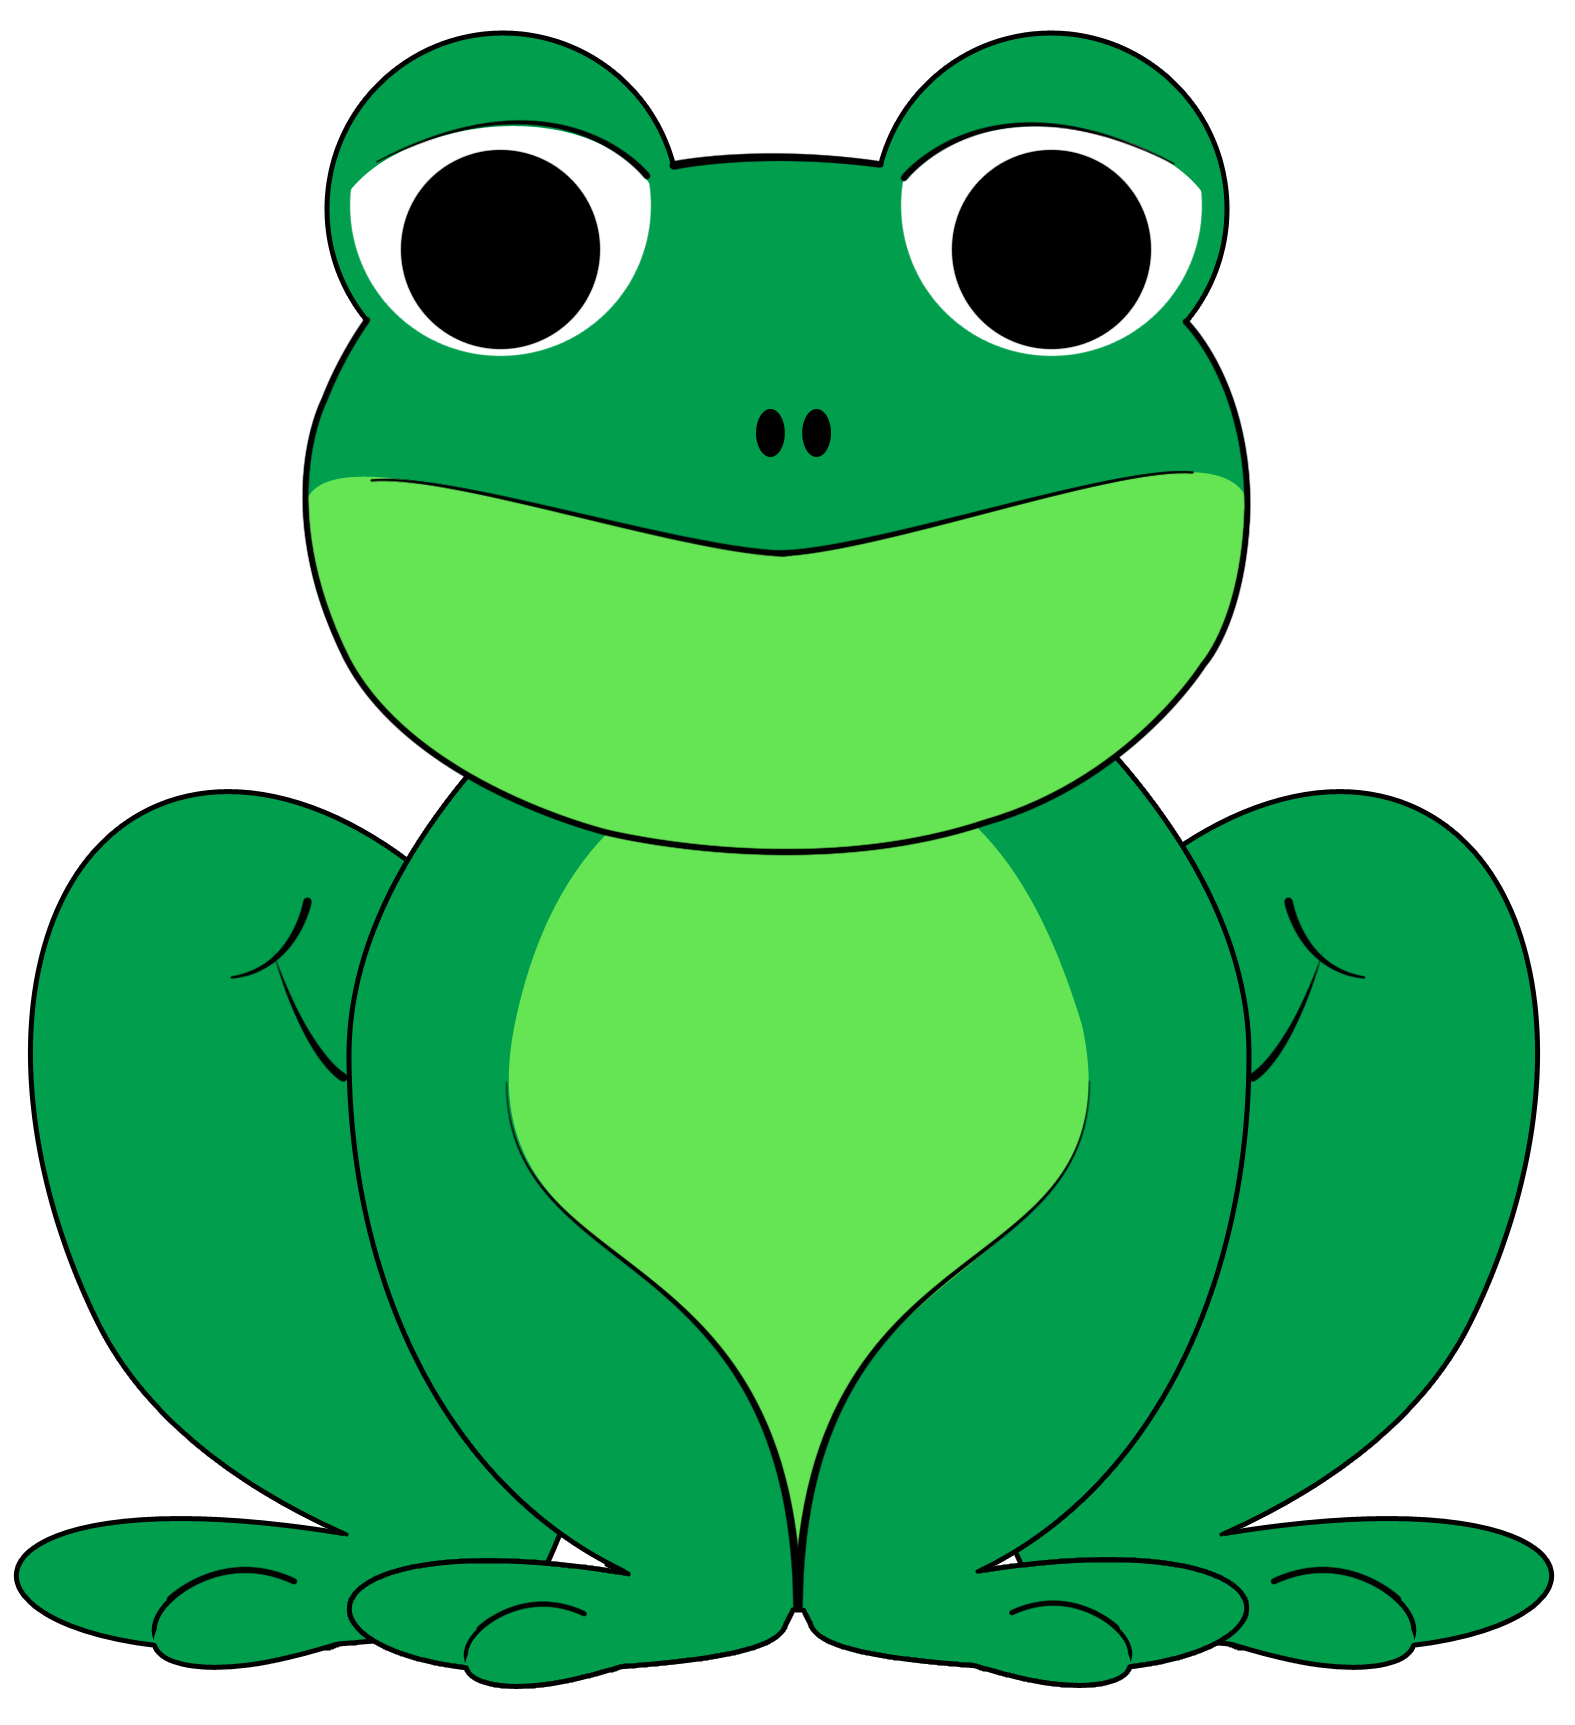 frog prince silhouette at getdrawings com free for personal use rh getdrawings com